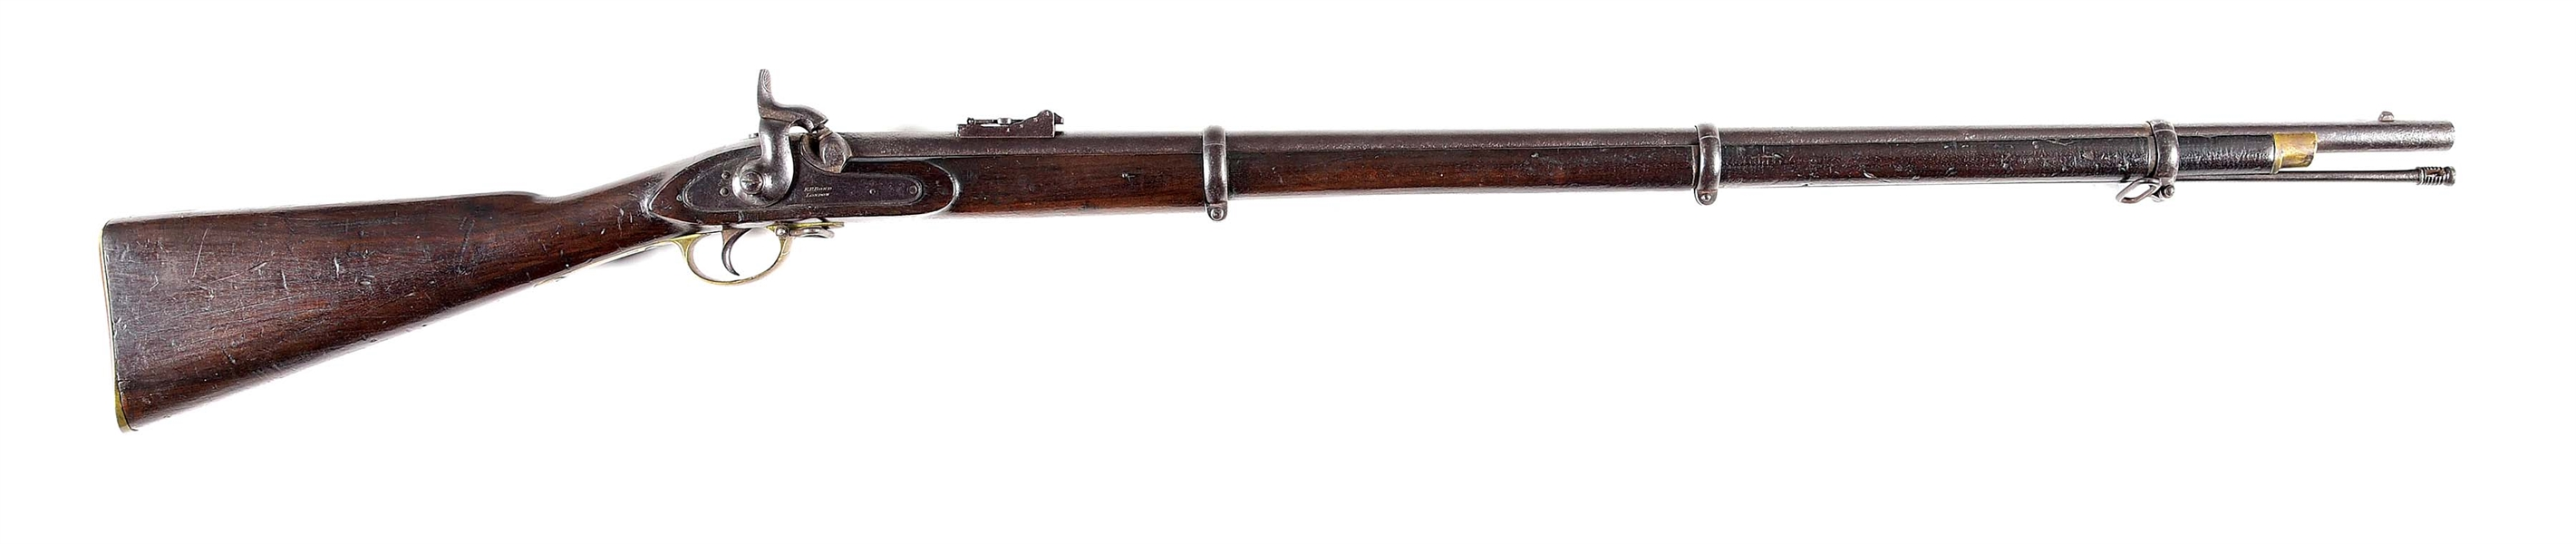 (A) RARE CONFEDERATE IMPORTED AND NUMBERED P-53 ENFIELD MUSKET BY BOND.